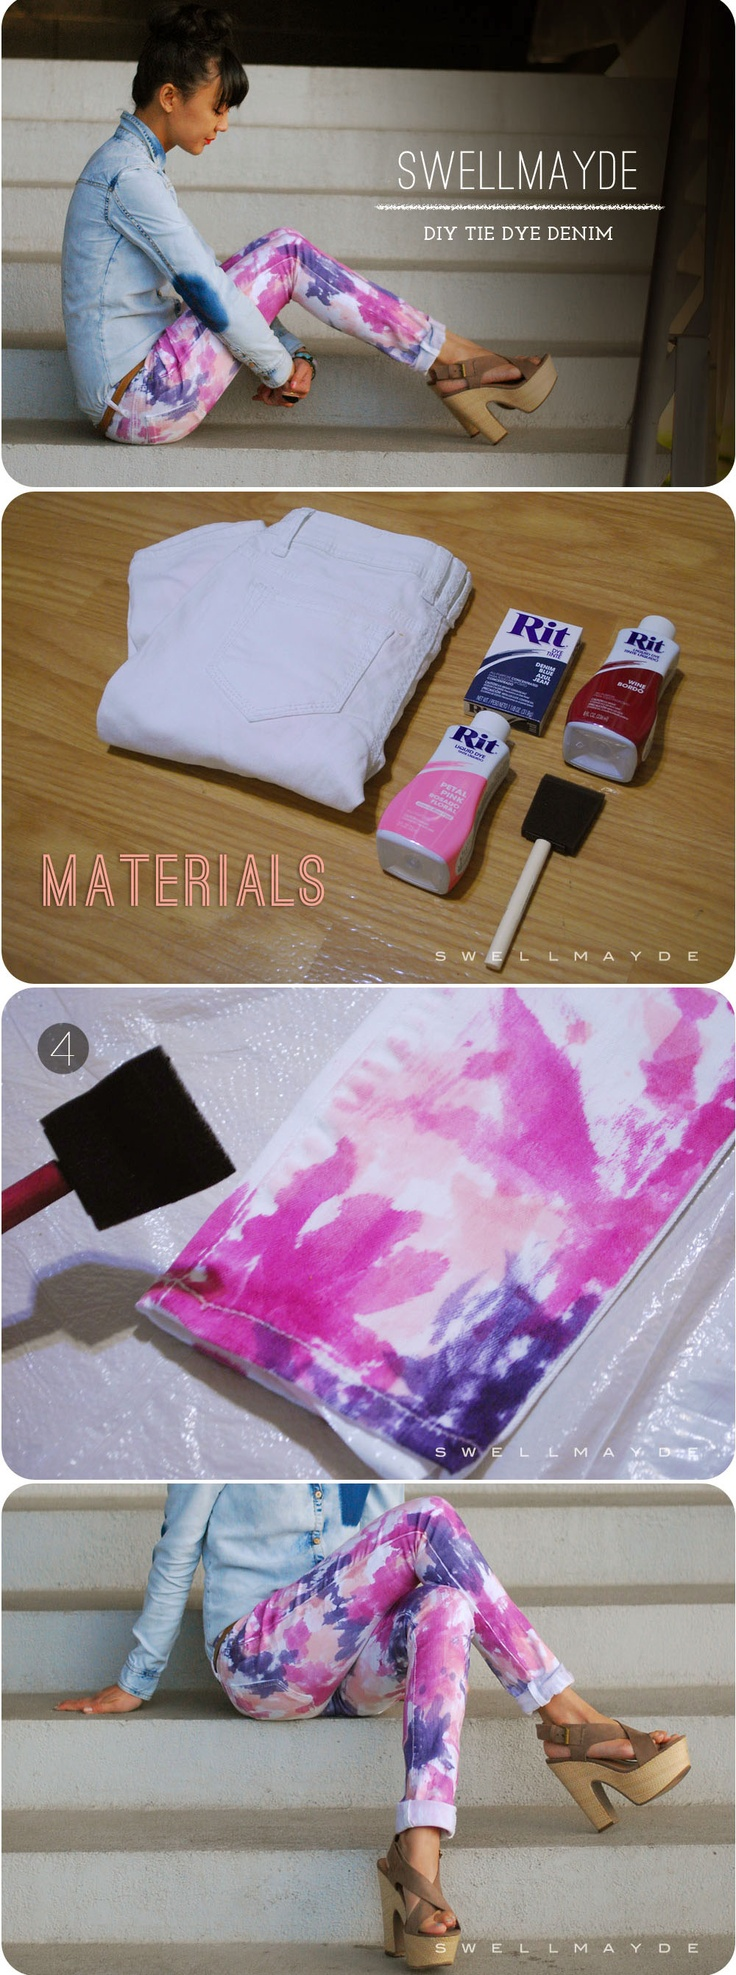 DIY Tie Dye Jeans Got to remember someones tip: cold water wash with a tablespoon of salt to hold the dye in...such a fun look! <3 this! Will be trying asap!!